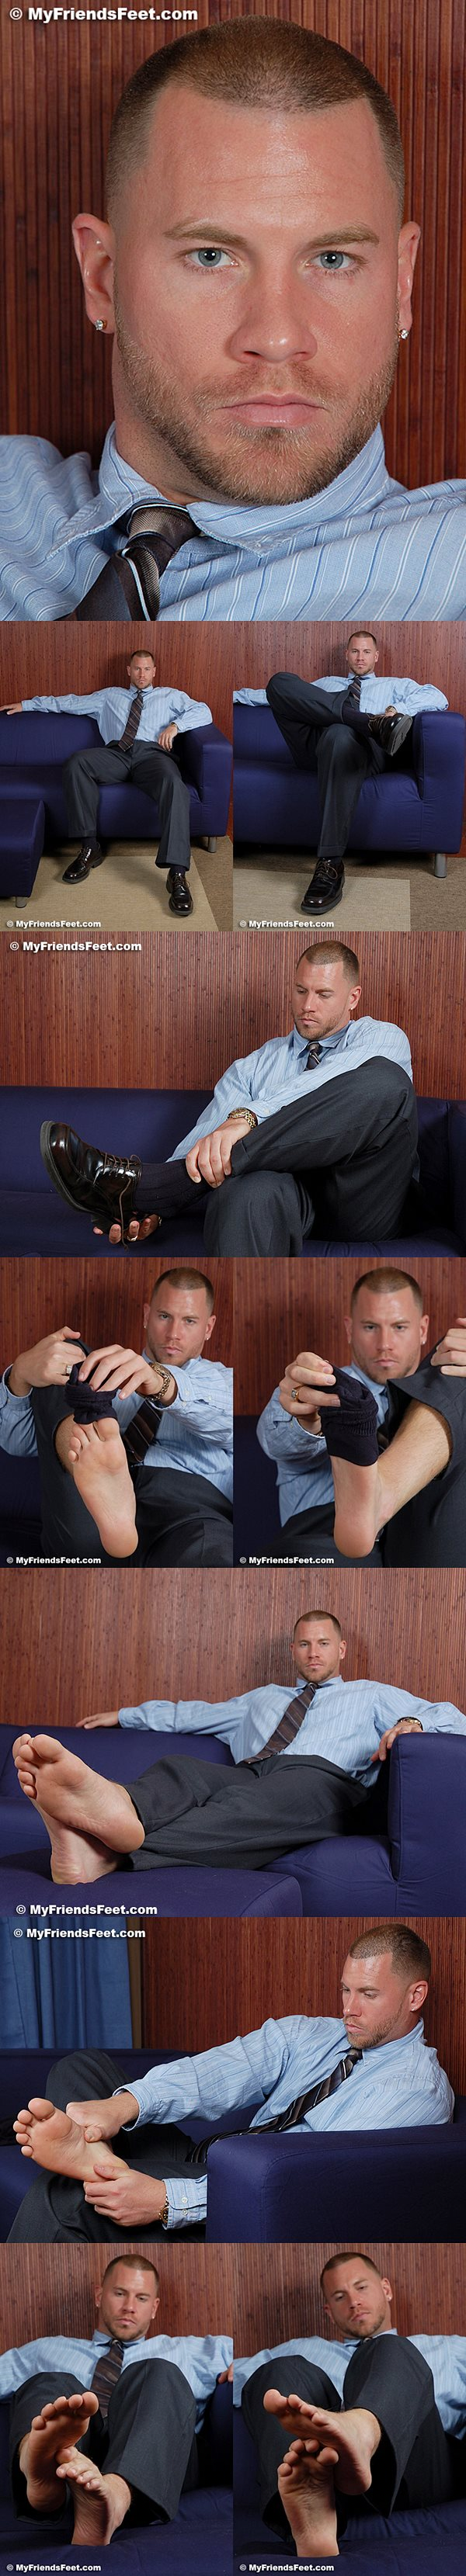 Rugged handsome massage therapist Skinner's size 13s in white socks and bare feet at Myfriendsfeet